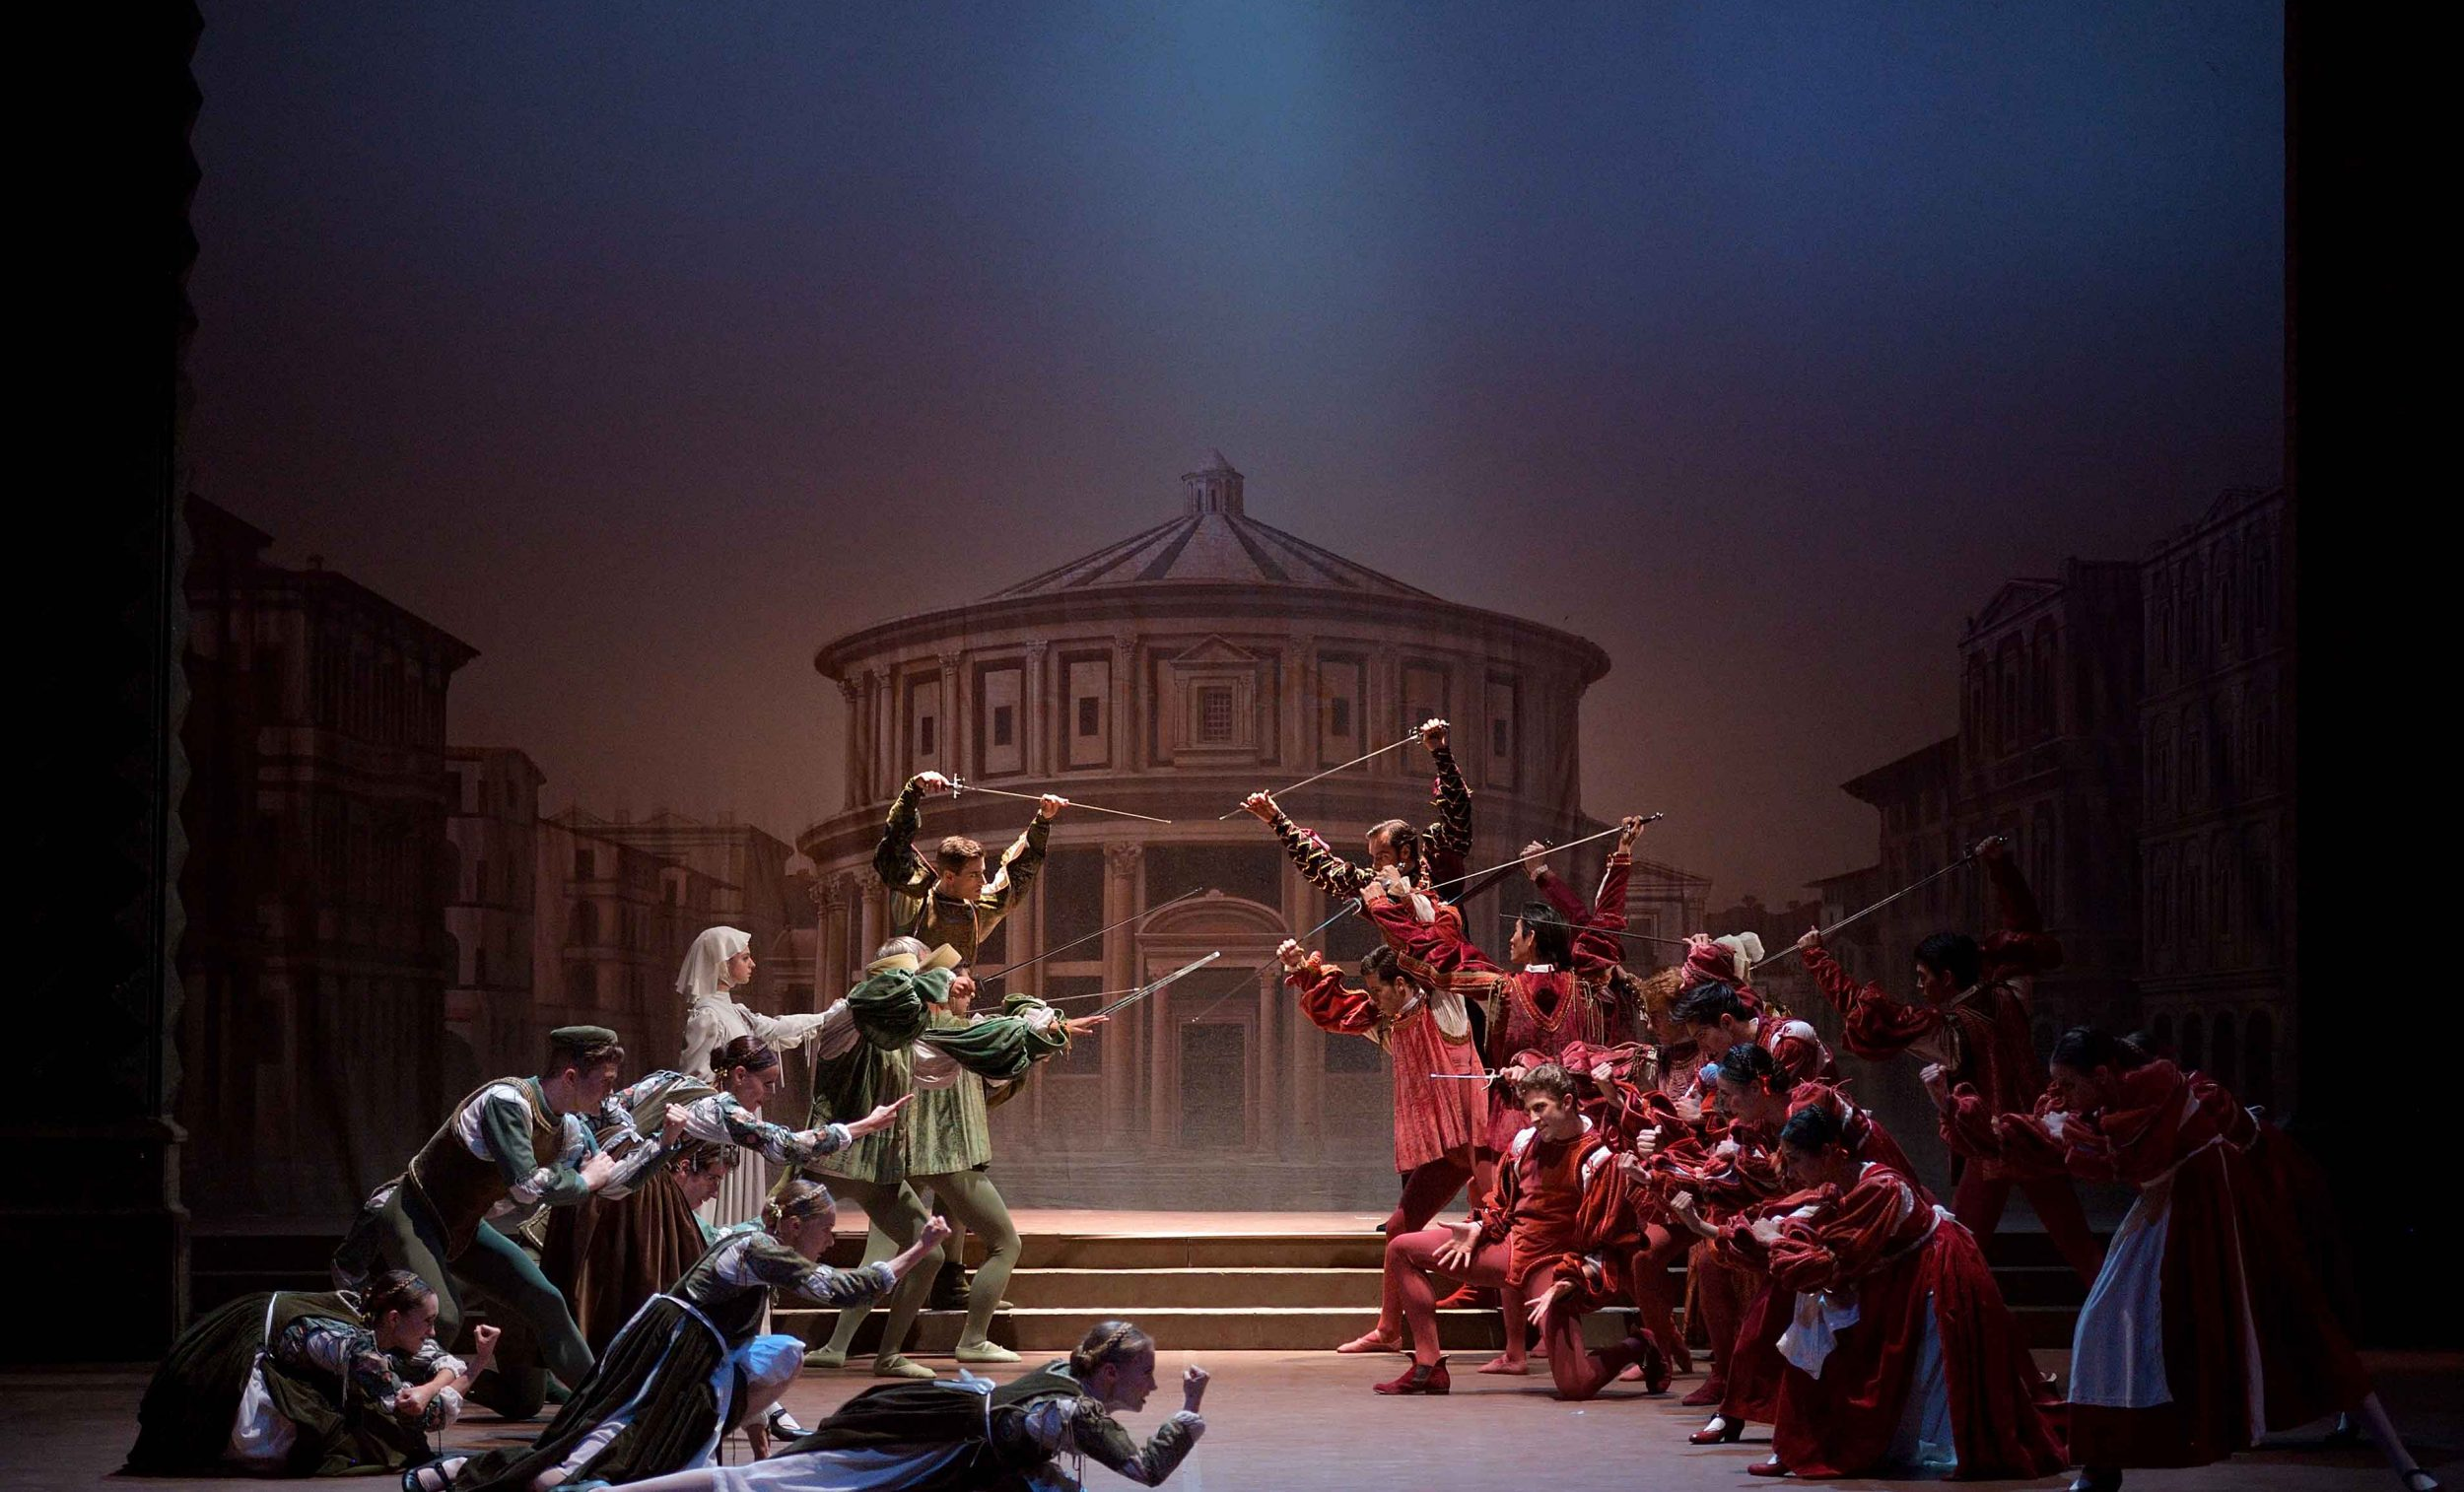 Nureyev's Romeo & Juliet: Prokofiev's exhilarating score | English National Ballet